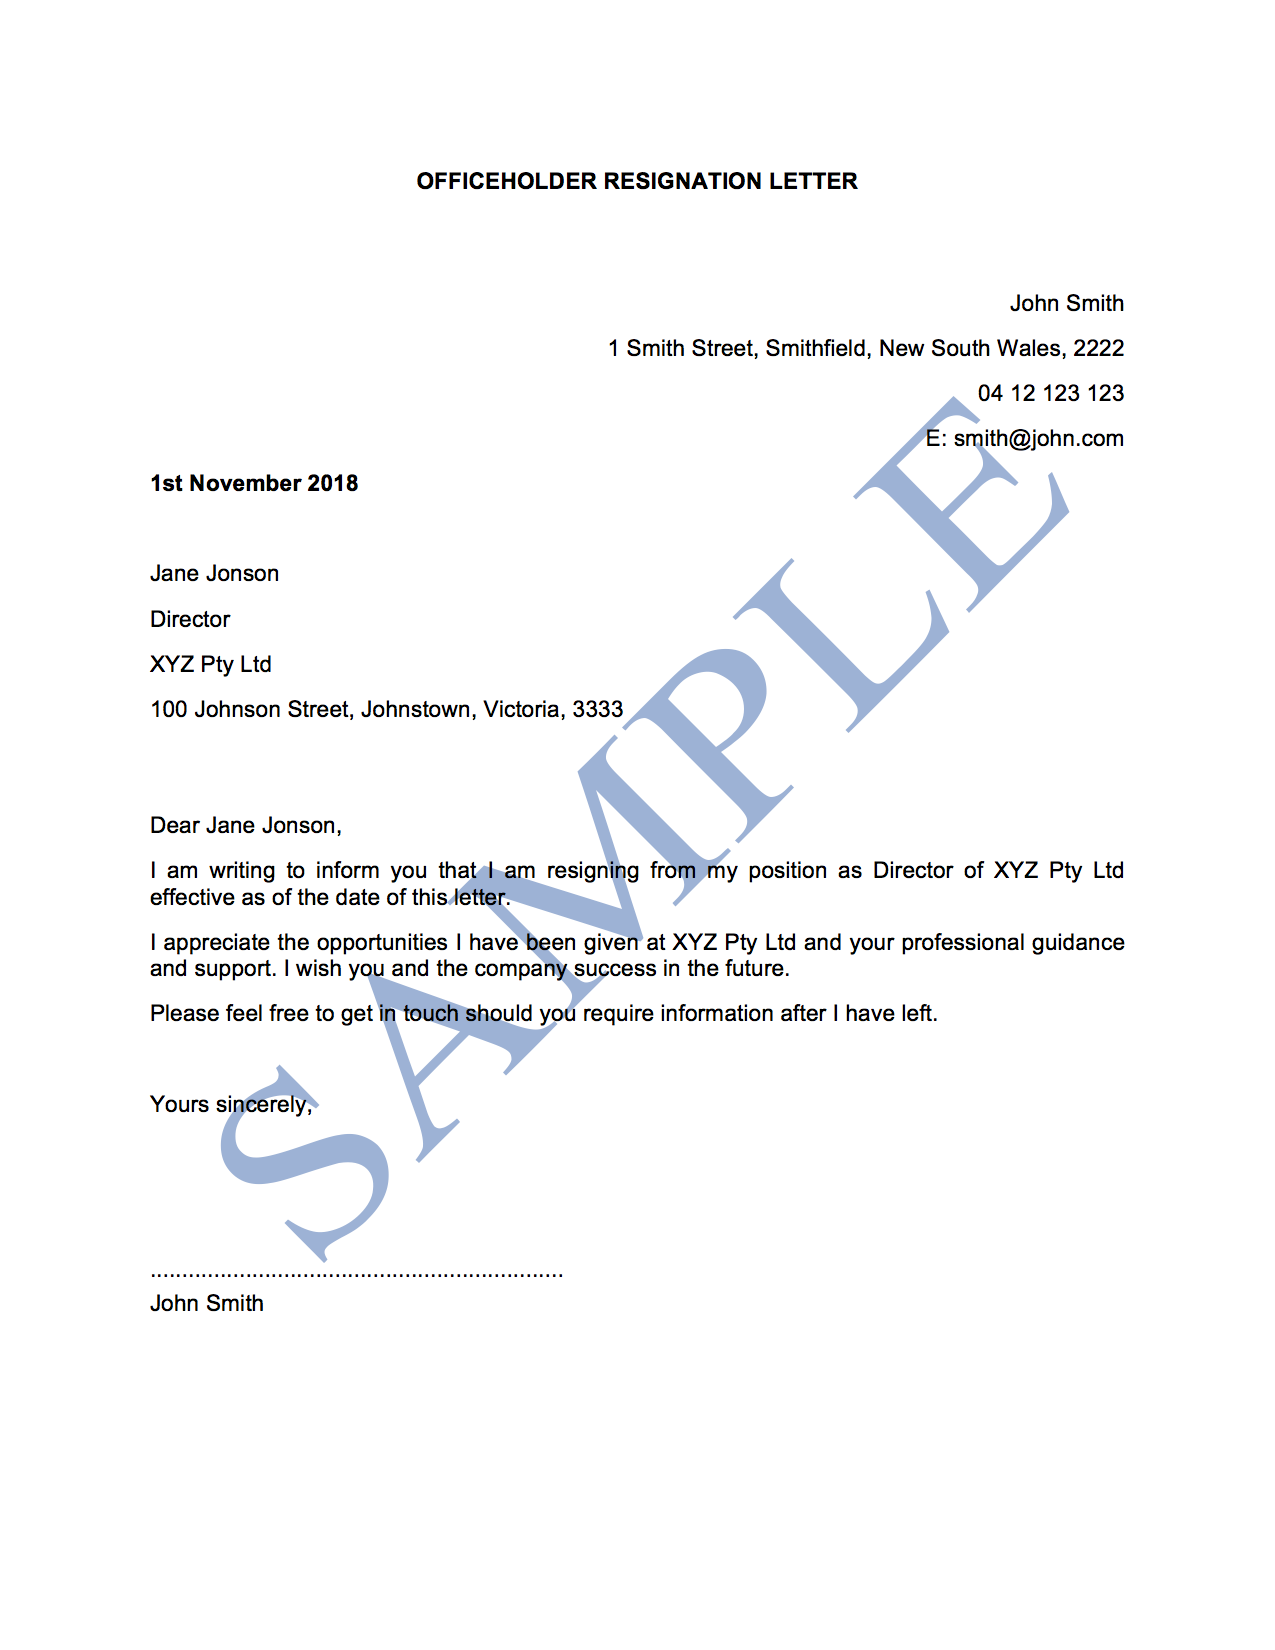 Officeholder Resignation Letter - Free Template | Sample ...